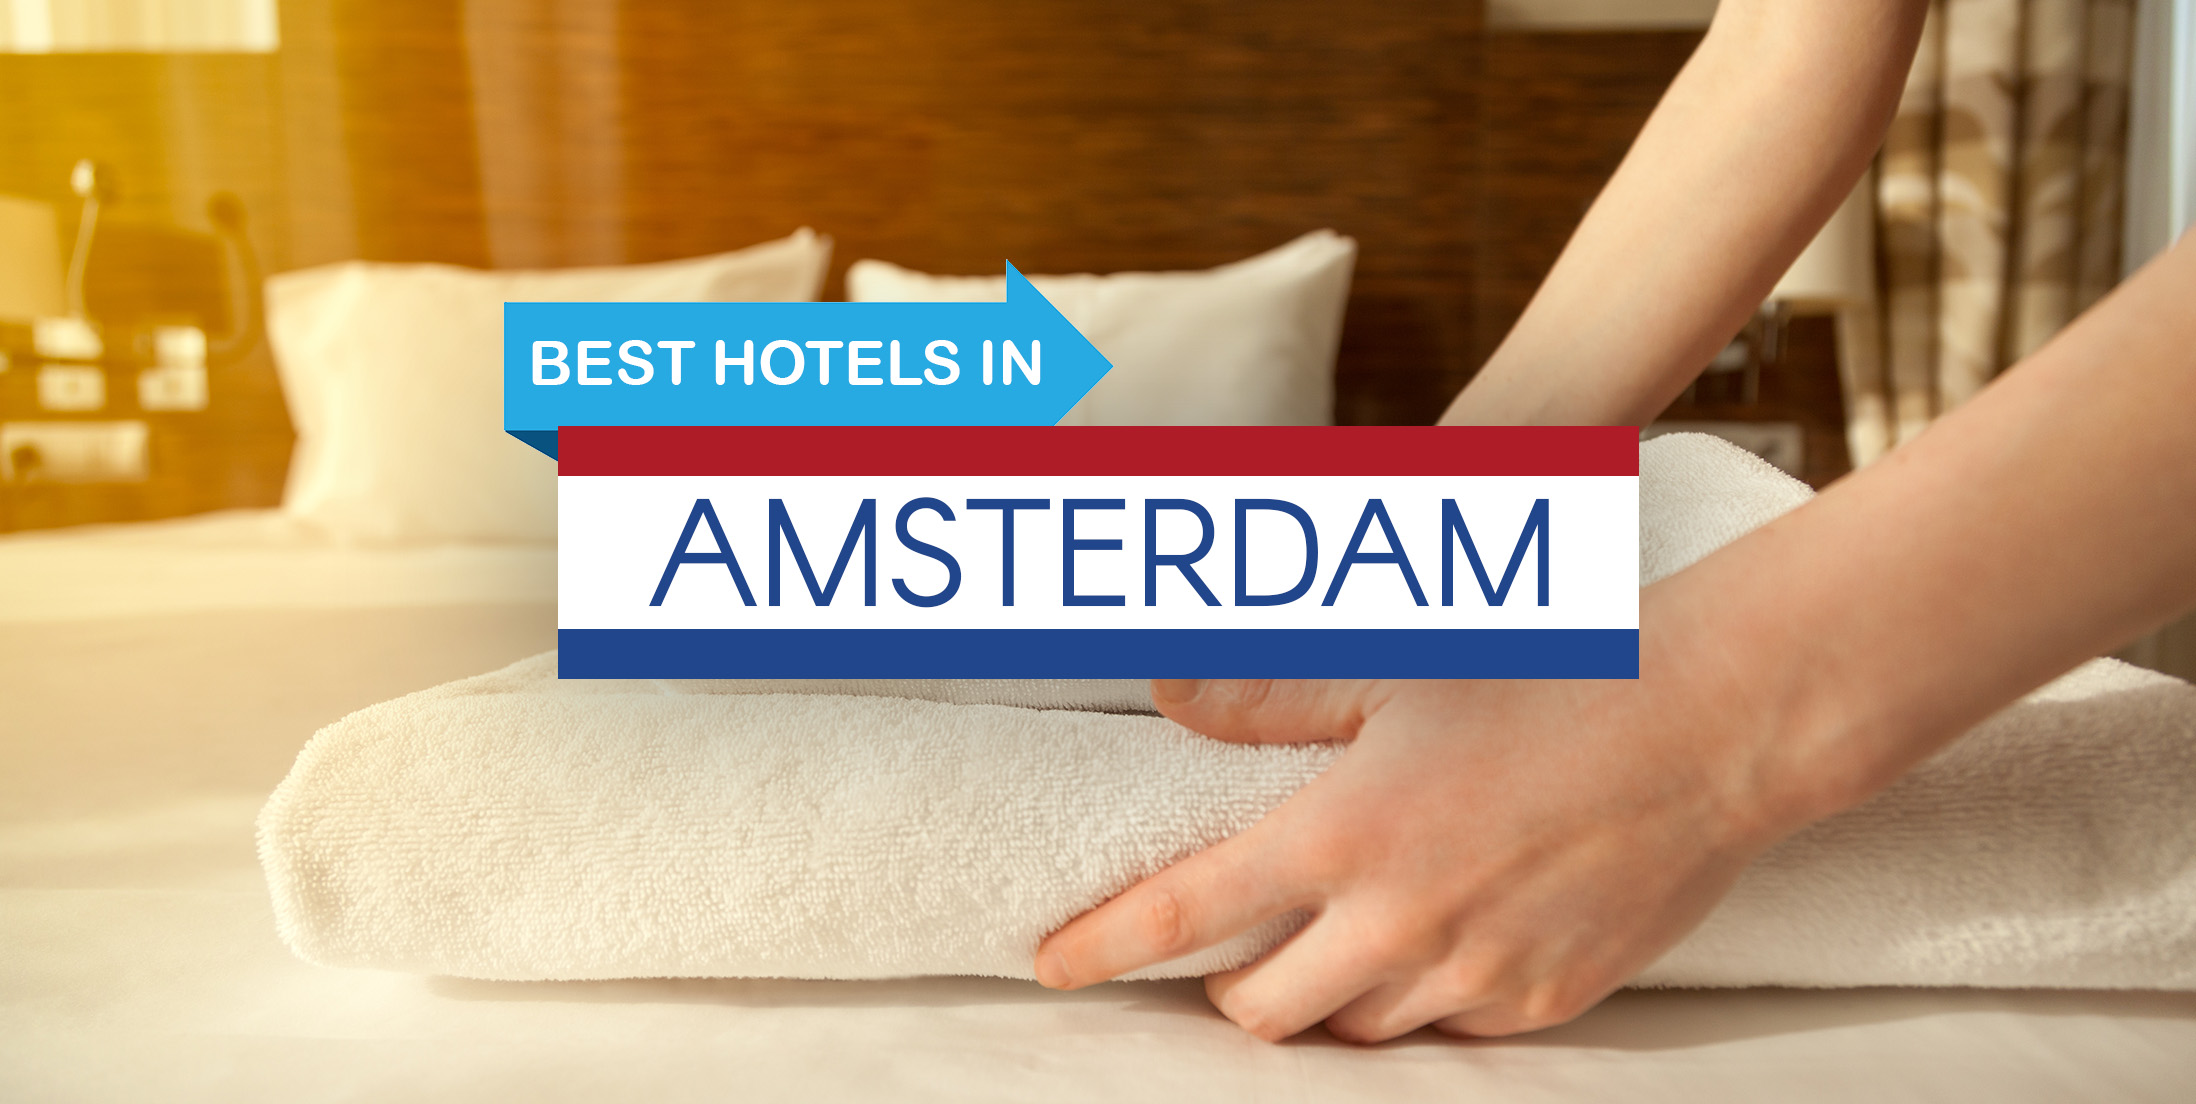 Best Hotels in Amsterdam